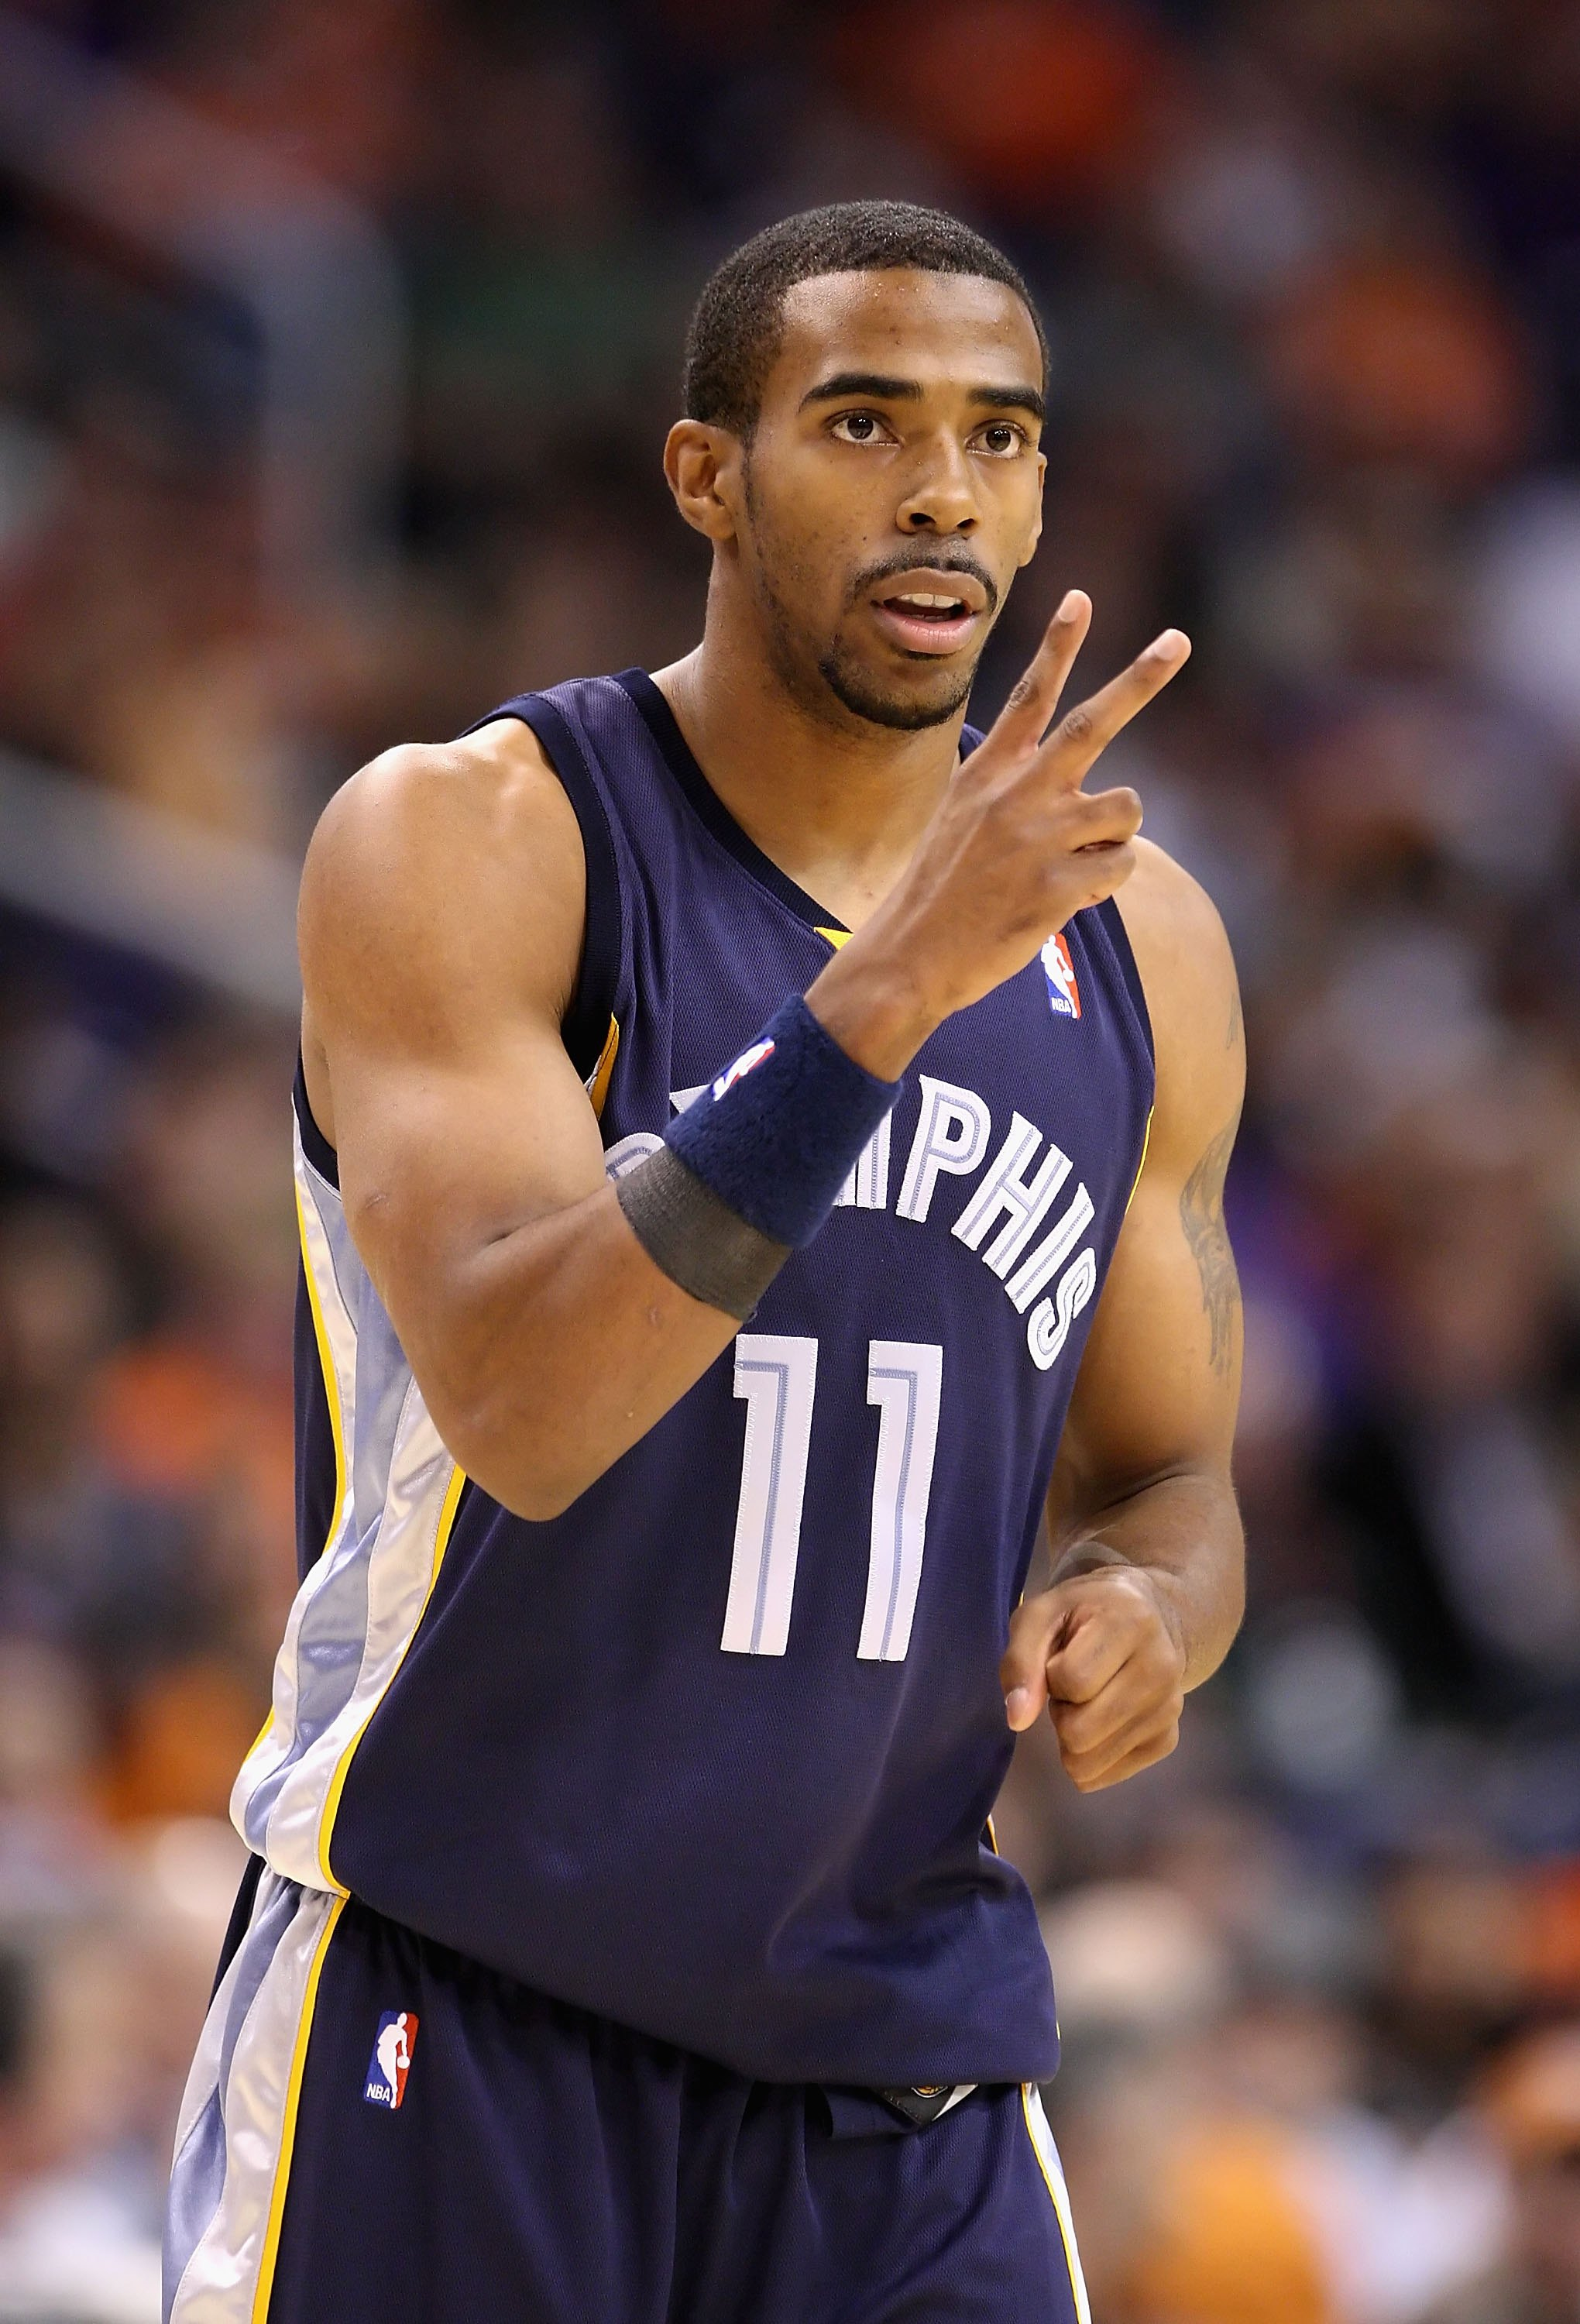 PHOENIX - NOVEMBER 25:  Mike Conley #11 of the Memphis Grizzlies during the NBA game against the Phoenix Suns at US Airways Center on November 25, 2009 in Phoenix, Arizona.  The Suns defeated the Grizzlies 126-111.  NOTE TO USER: User expressly acknowledg